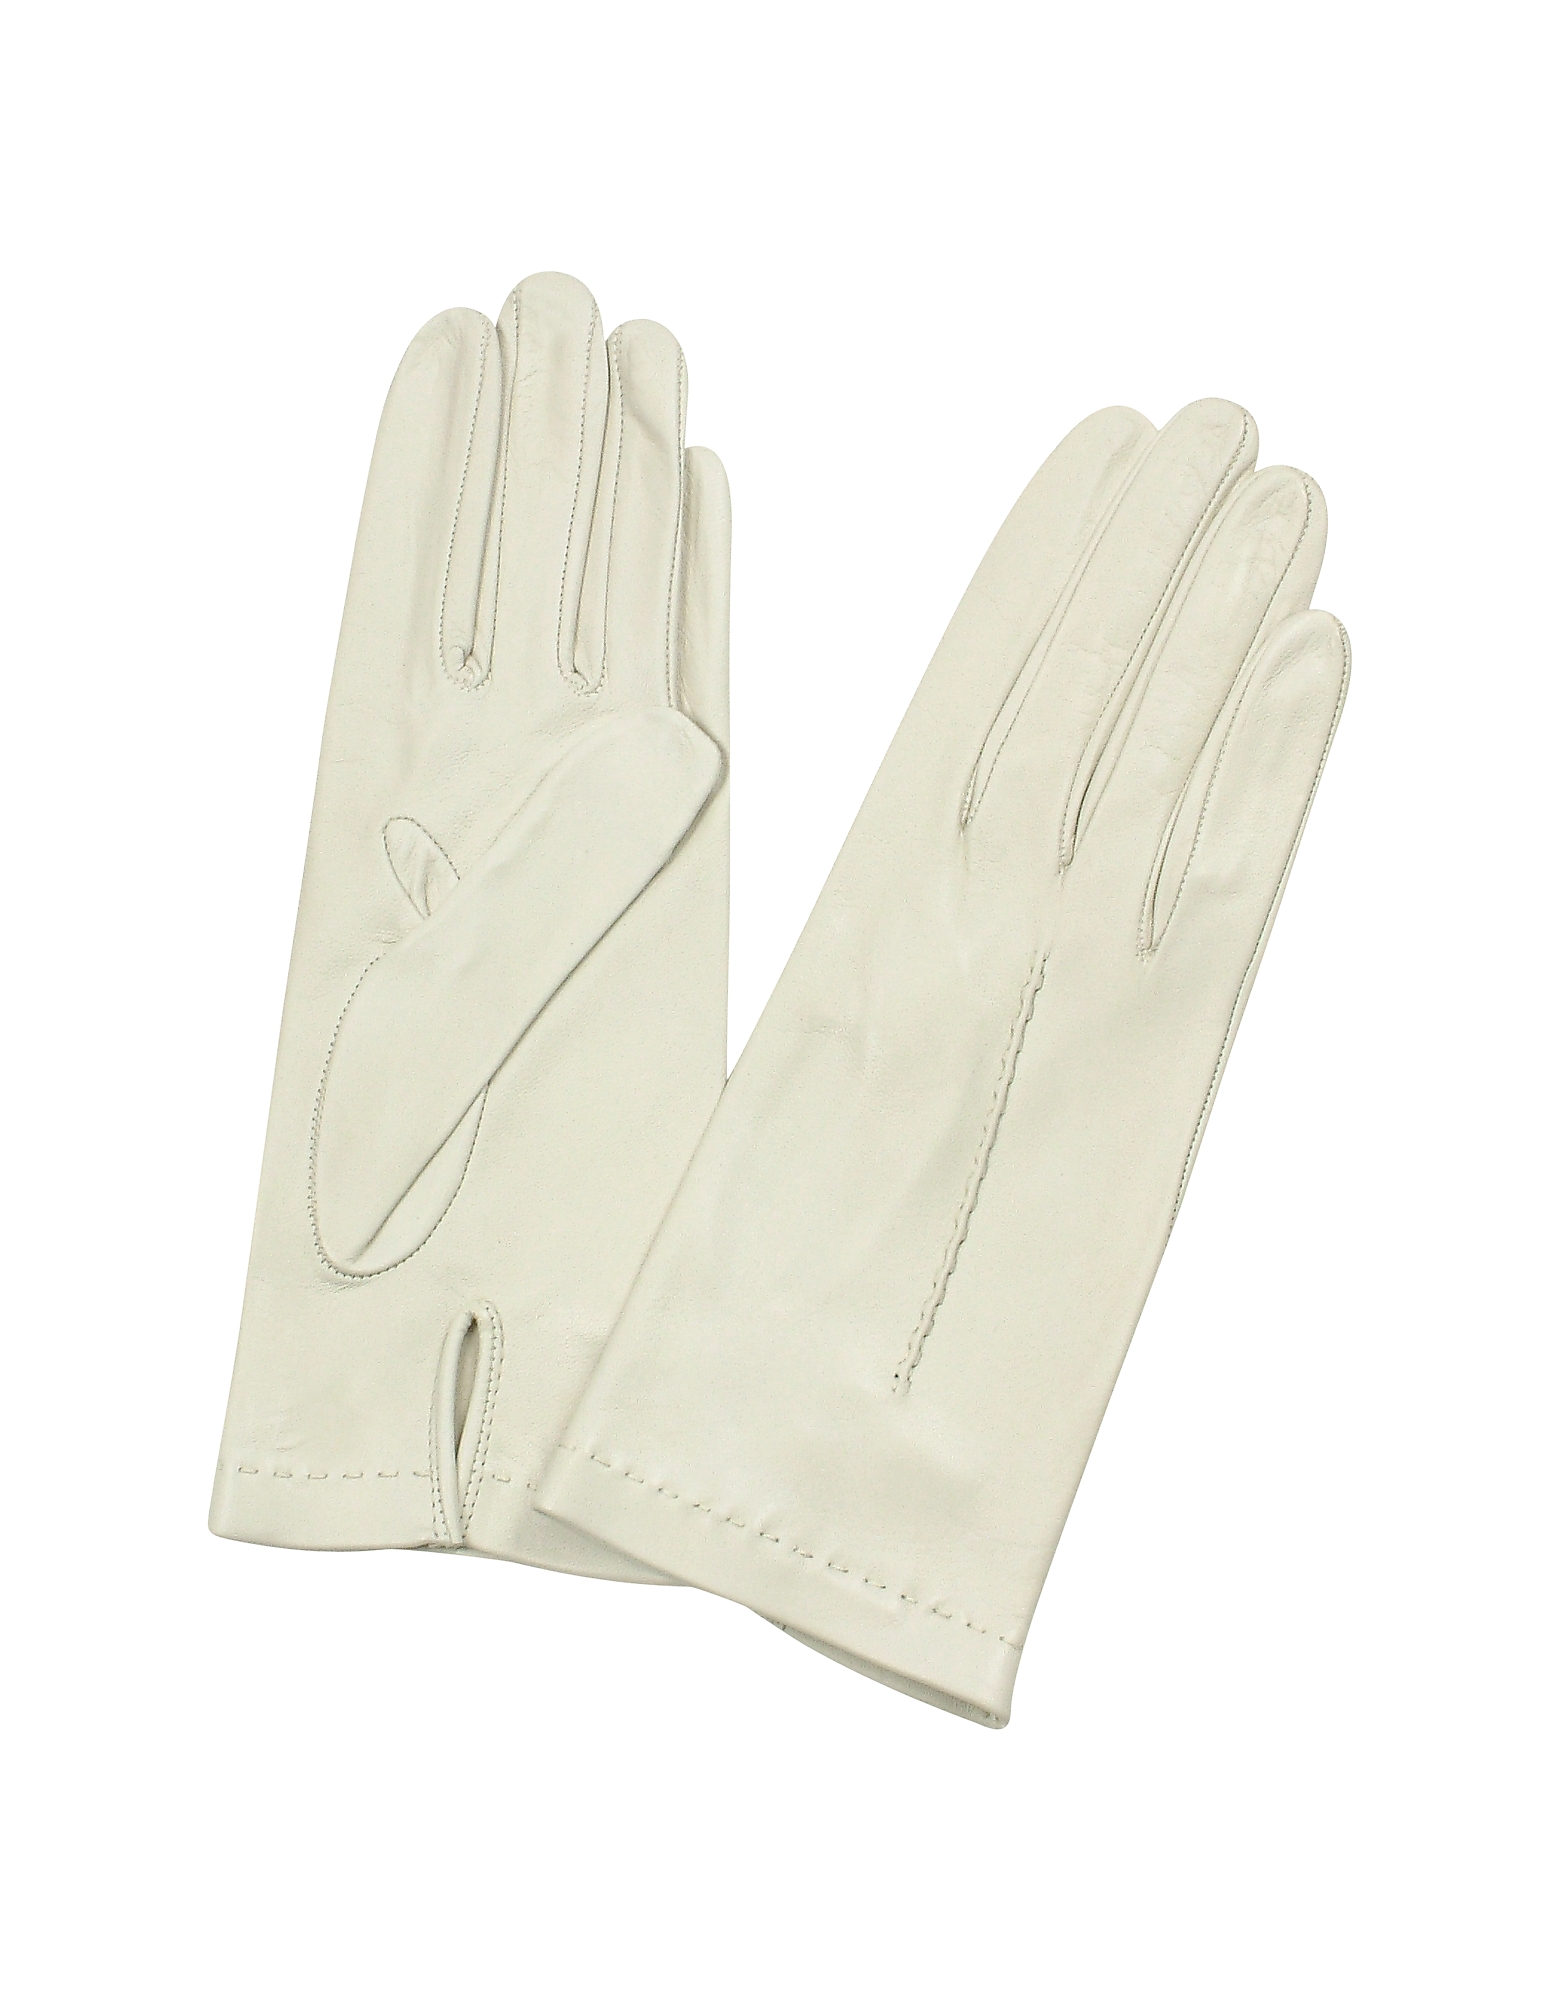 Vintage Style Gloves- Long, Wrist, Evening, Day, Leather, Lace Forzieri Designer Womens Gloves Womens Ivory Unlined Italian Leather Gloves $115.00 AT vintagedancer.com